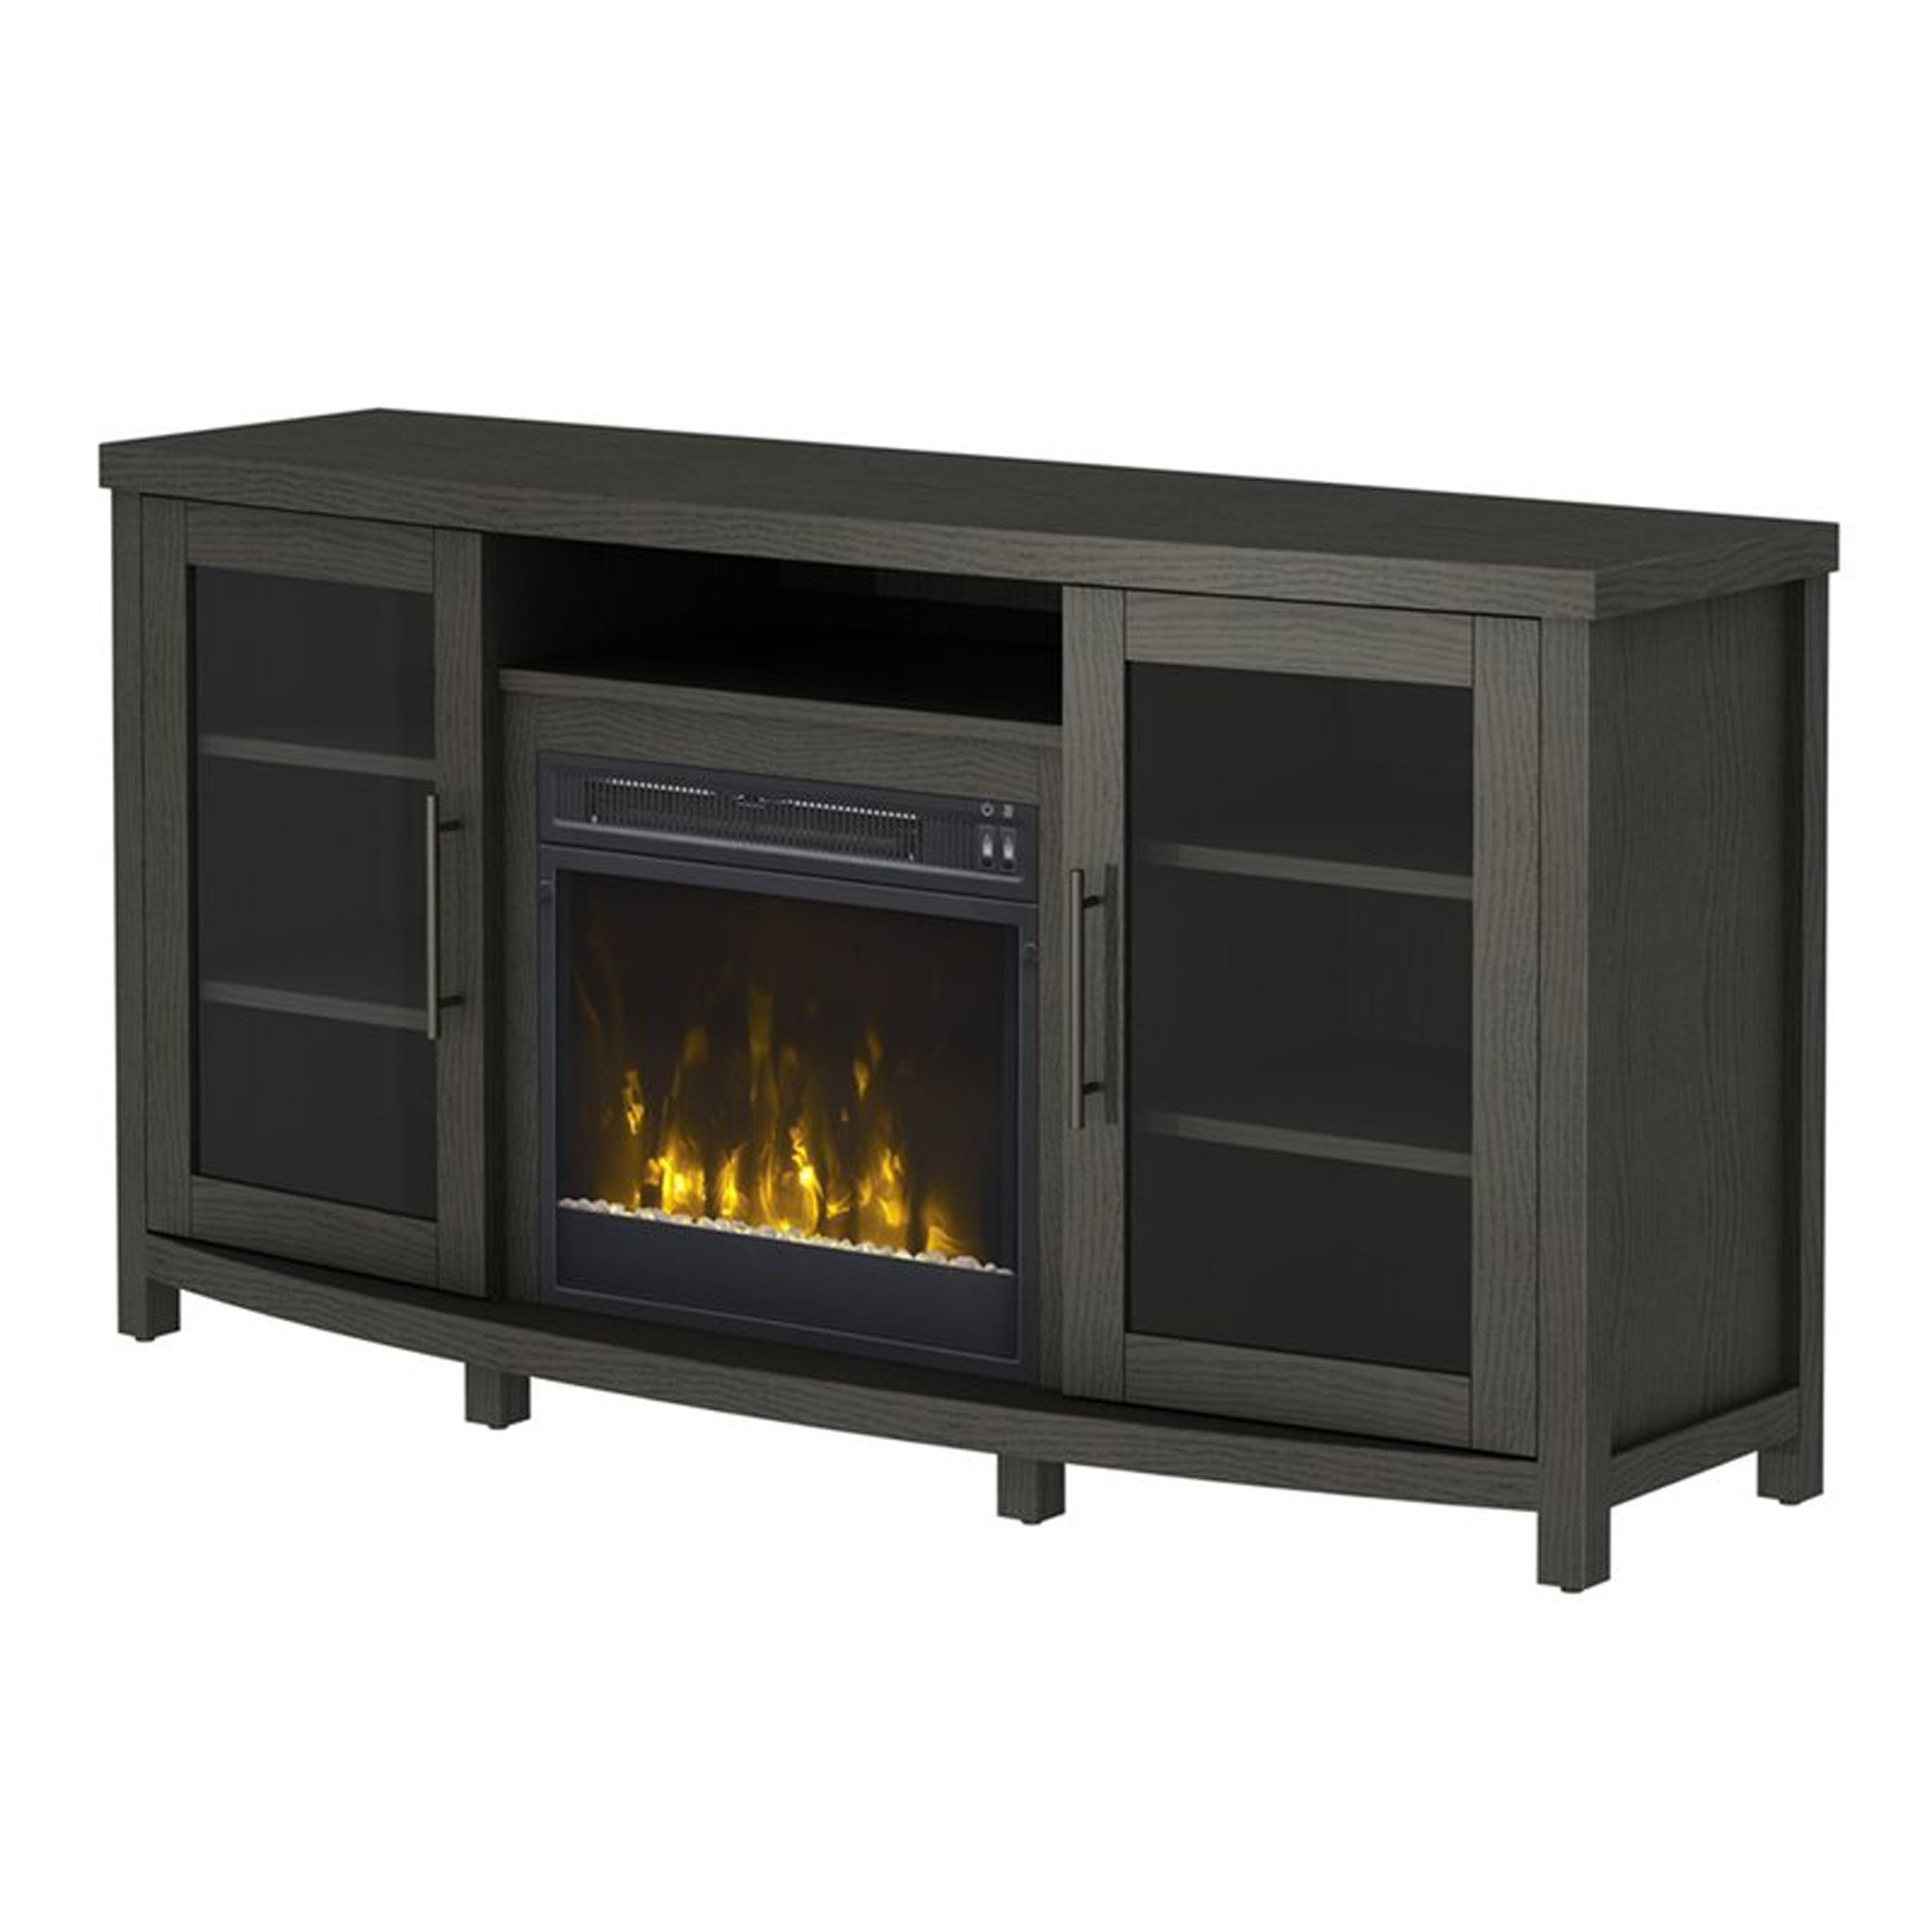 Fireplace TV Stand - Contemporary Electric Heater And Media Storage Cabinet - Vintage Style - Assembly required (Tifton Oak)